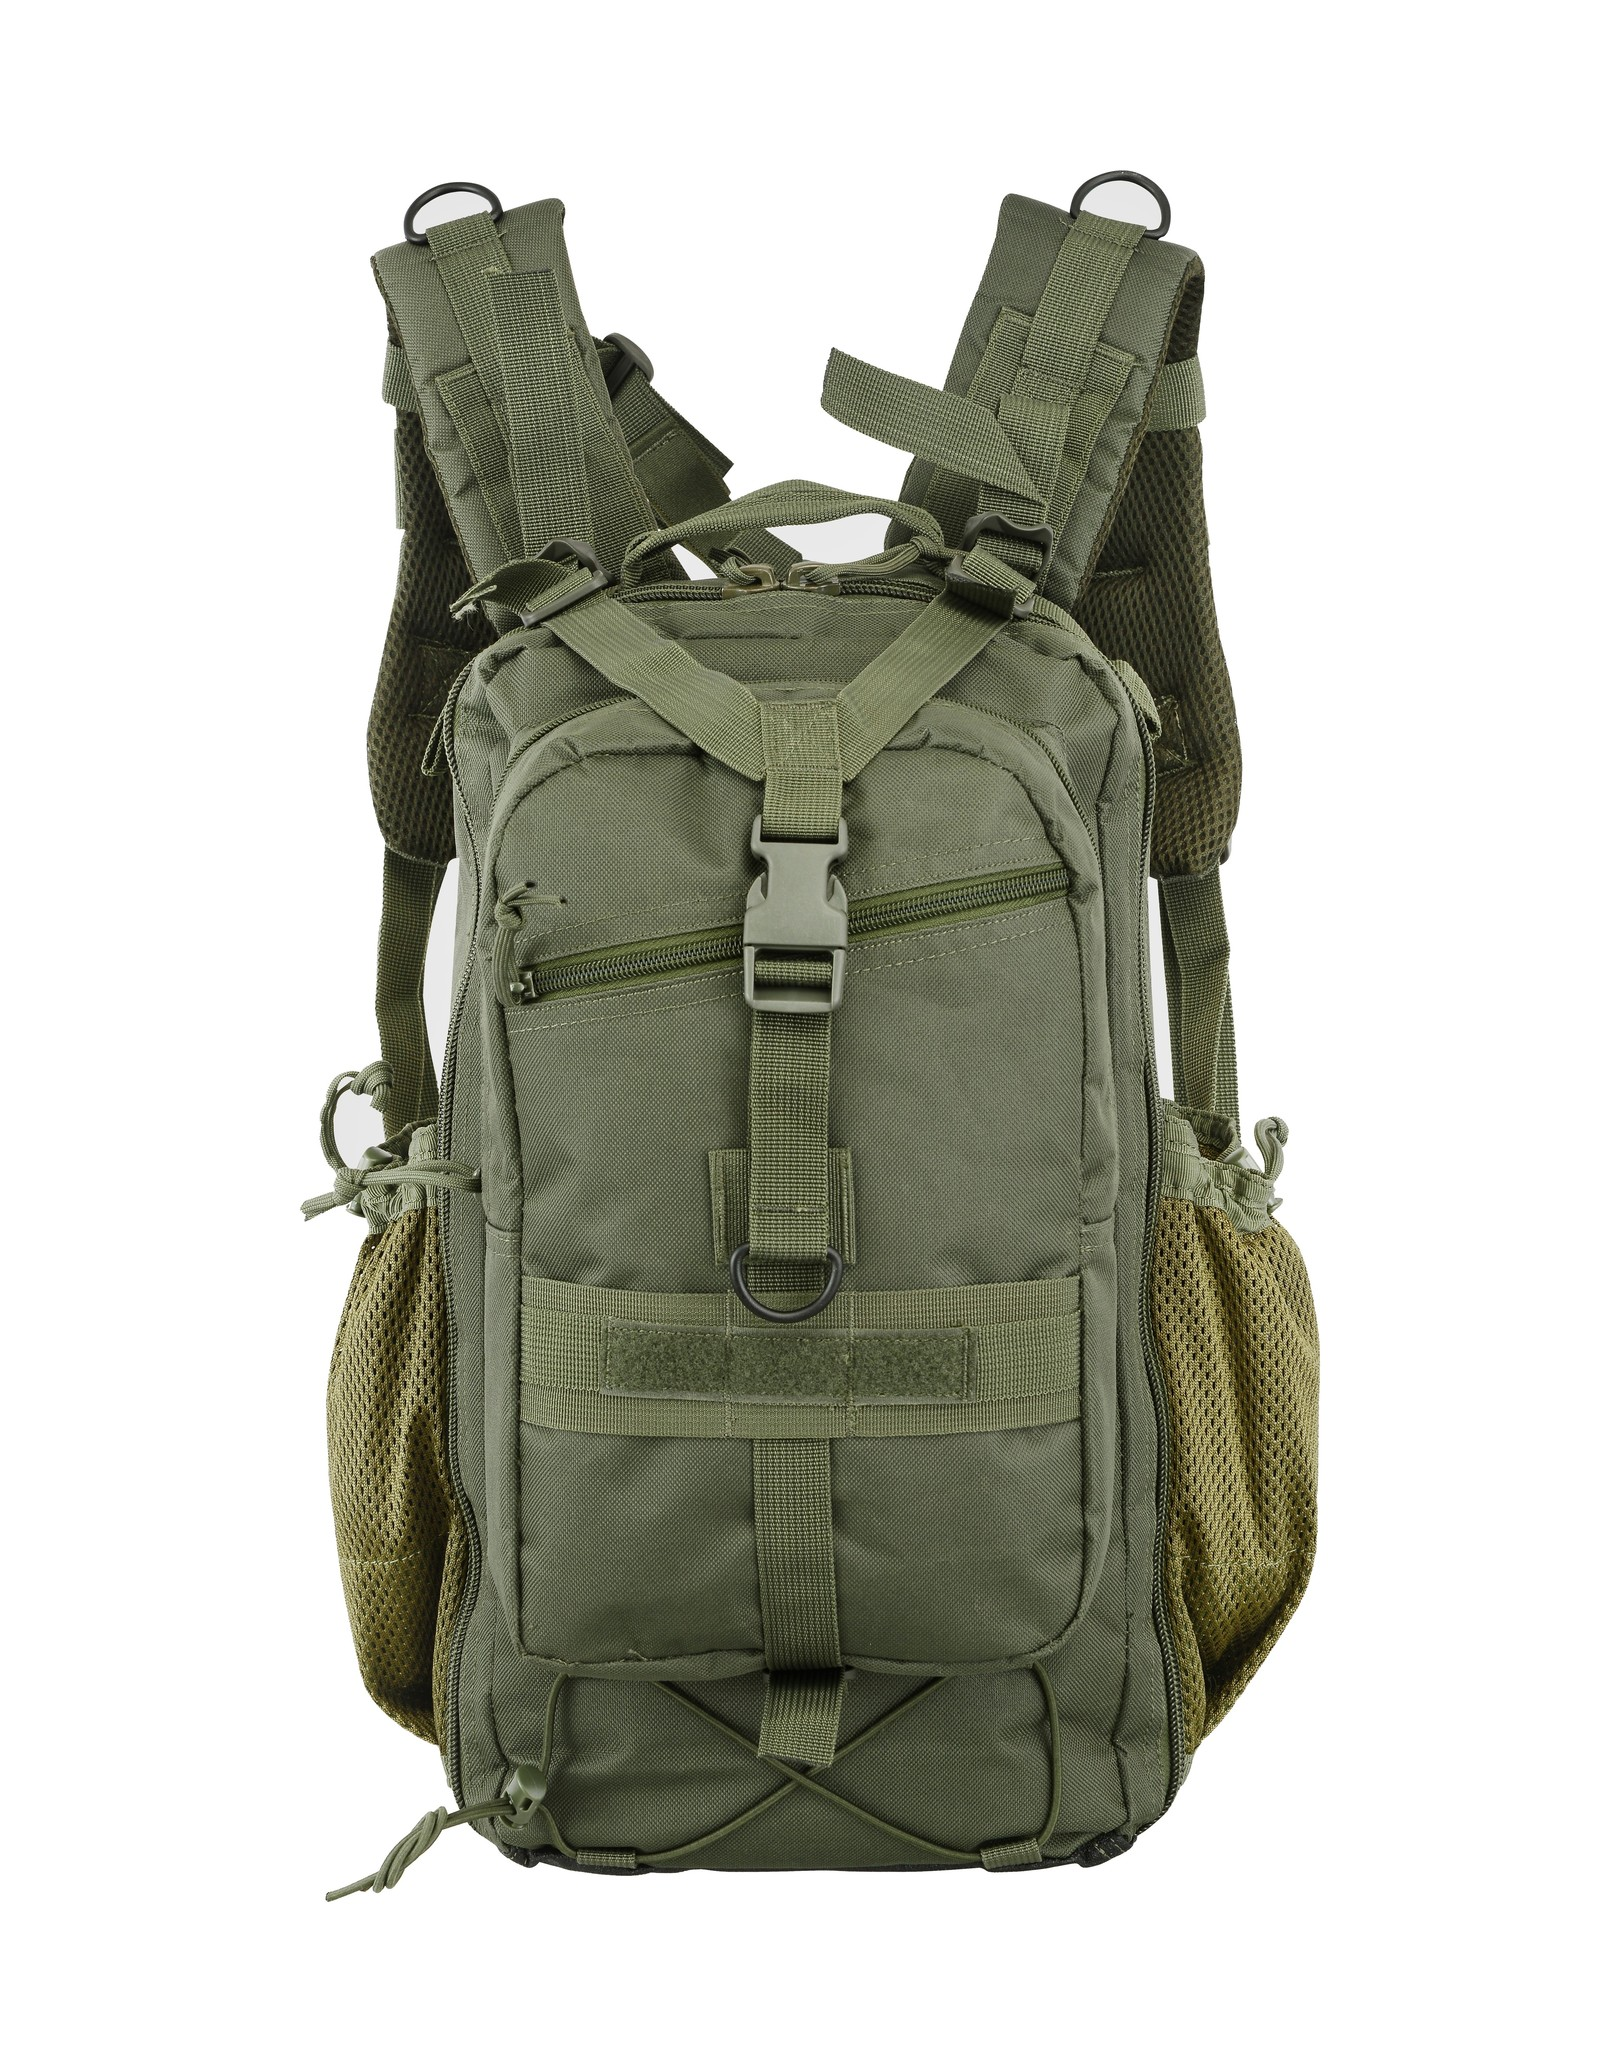 TRG SAS FALCON PACK -OLIVE